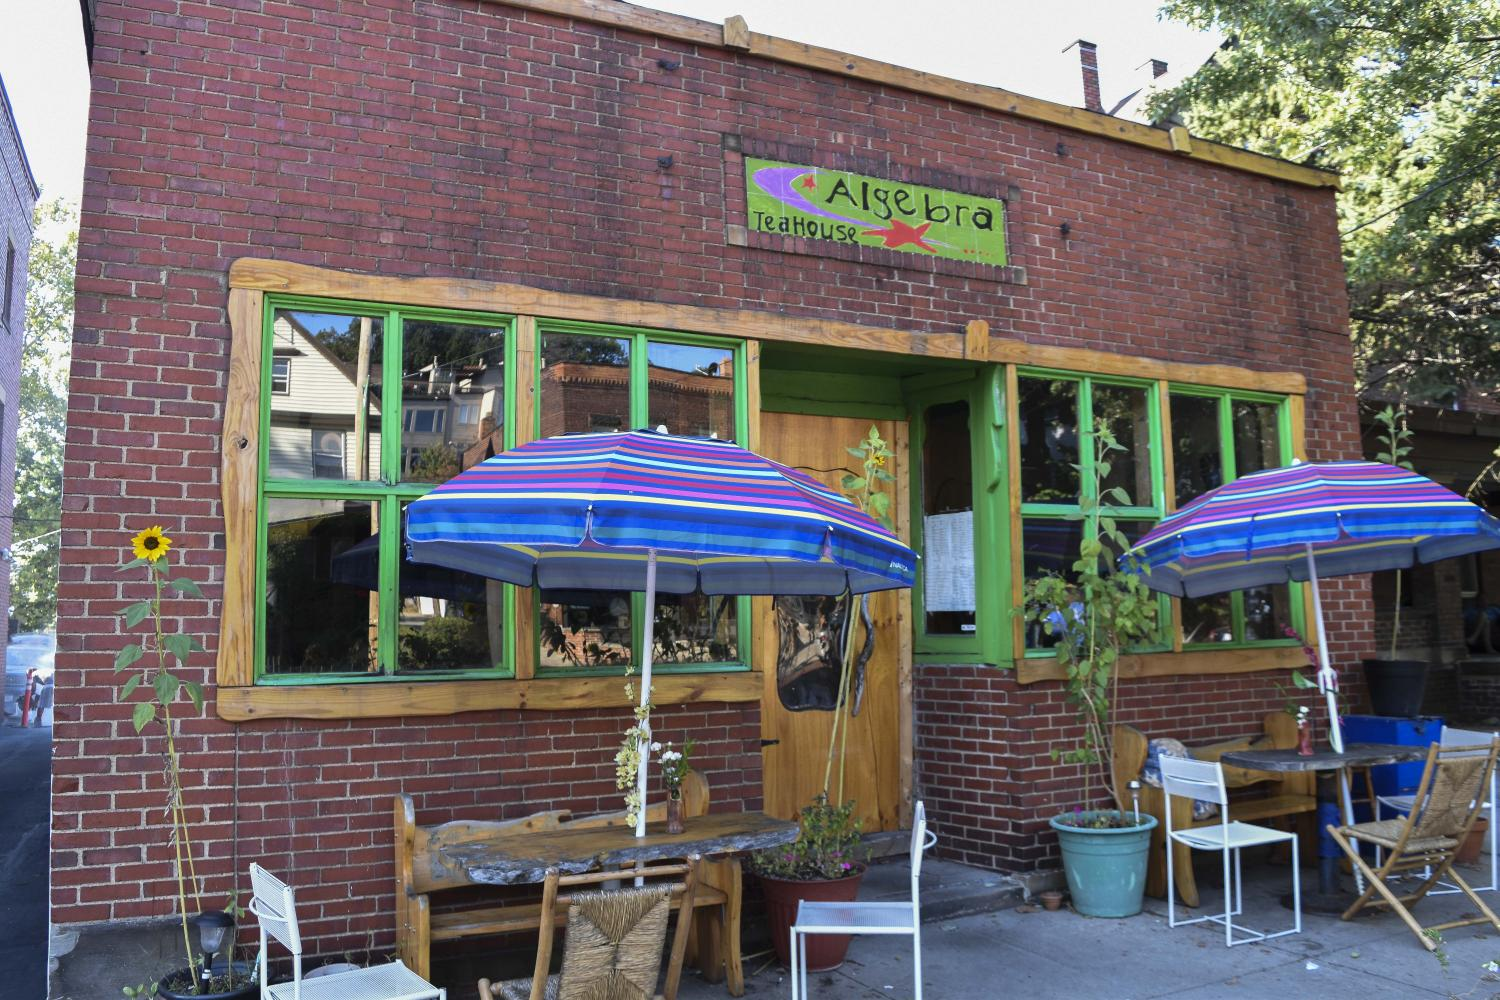 Algebra Tea House is one of the treasures near CWRU's campus